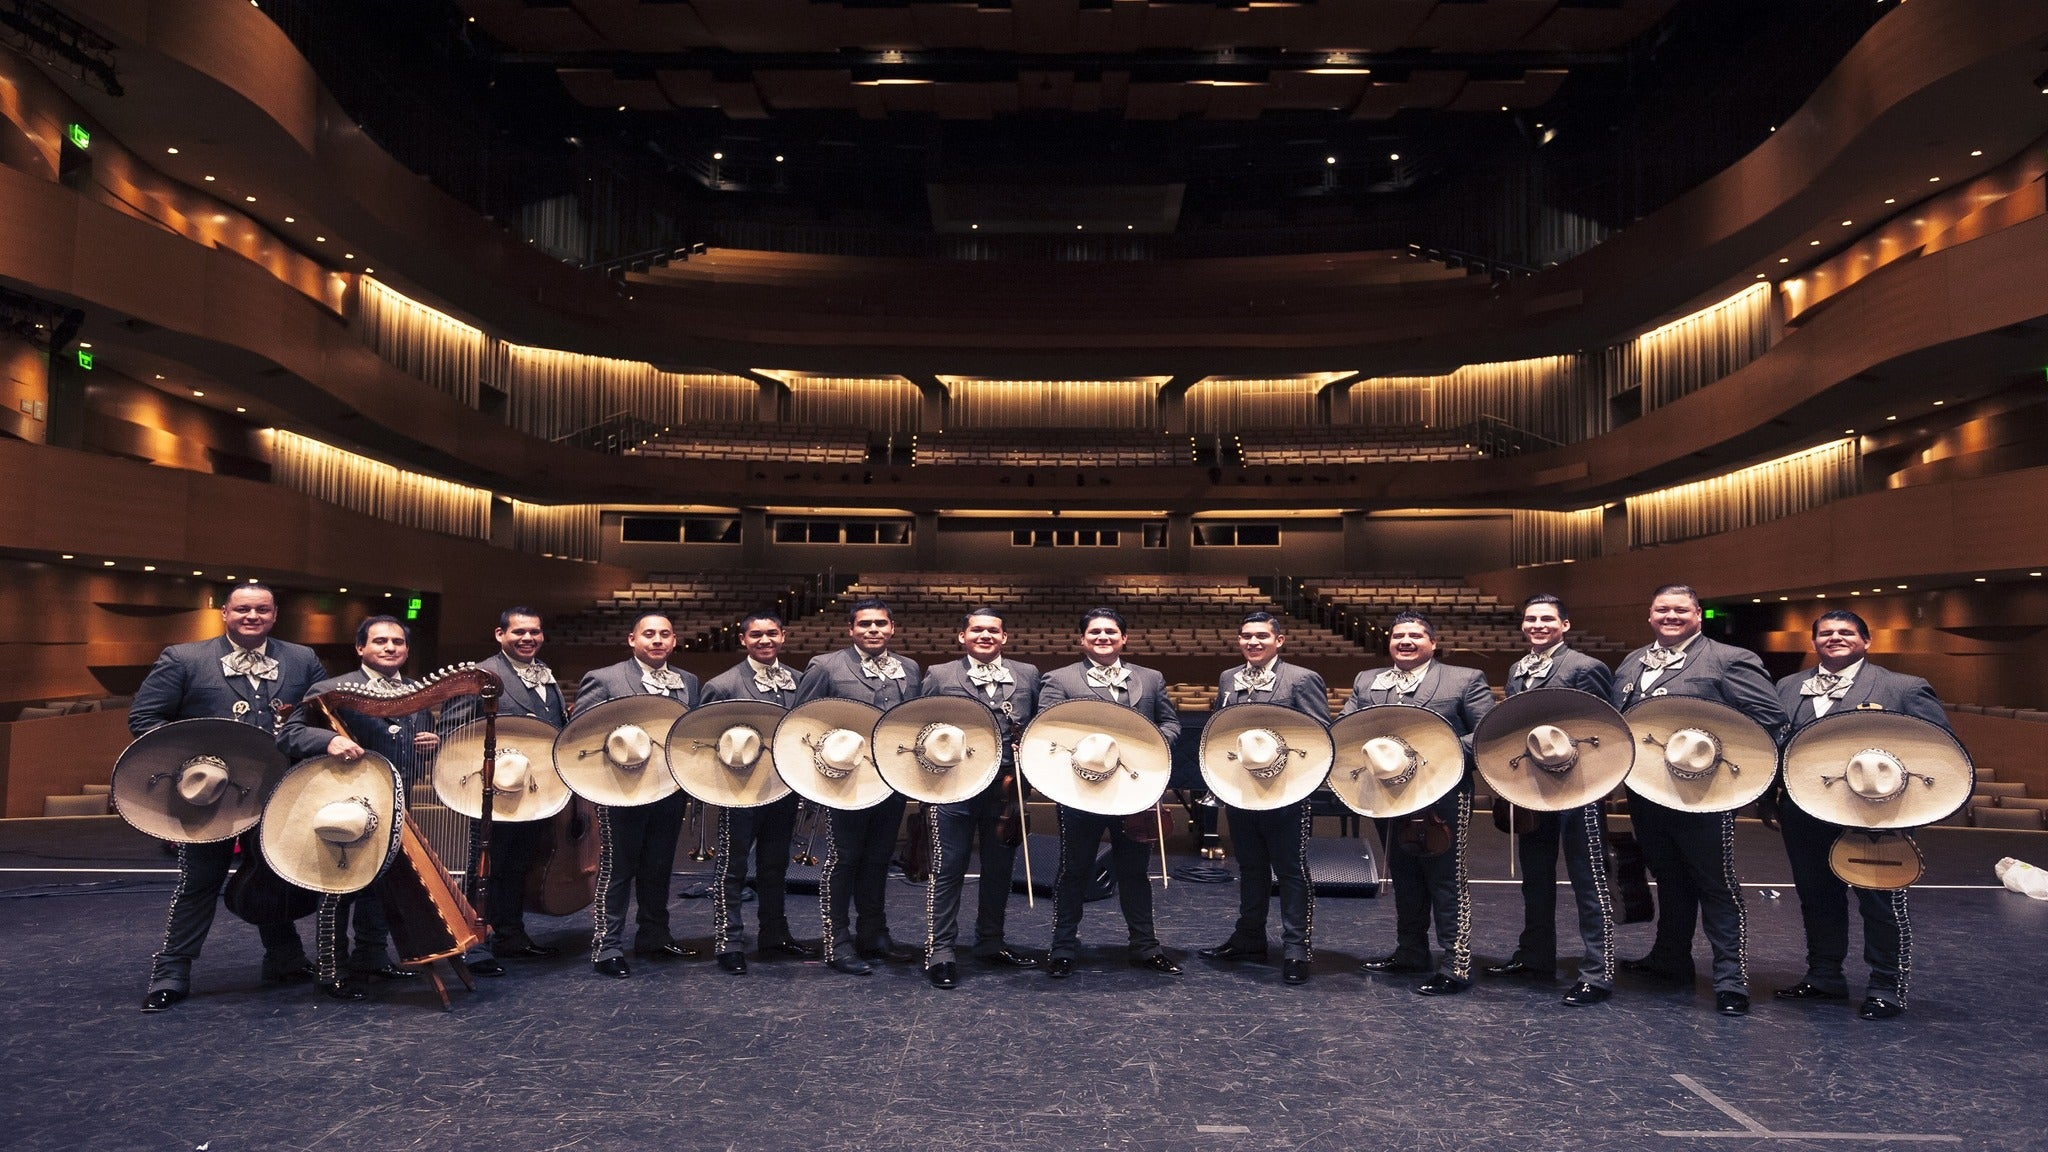 Annual Chandler Mariachi Festival at Chandler Arts Center